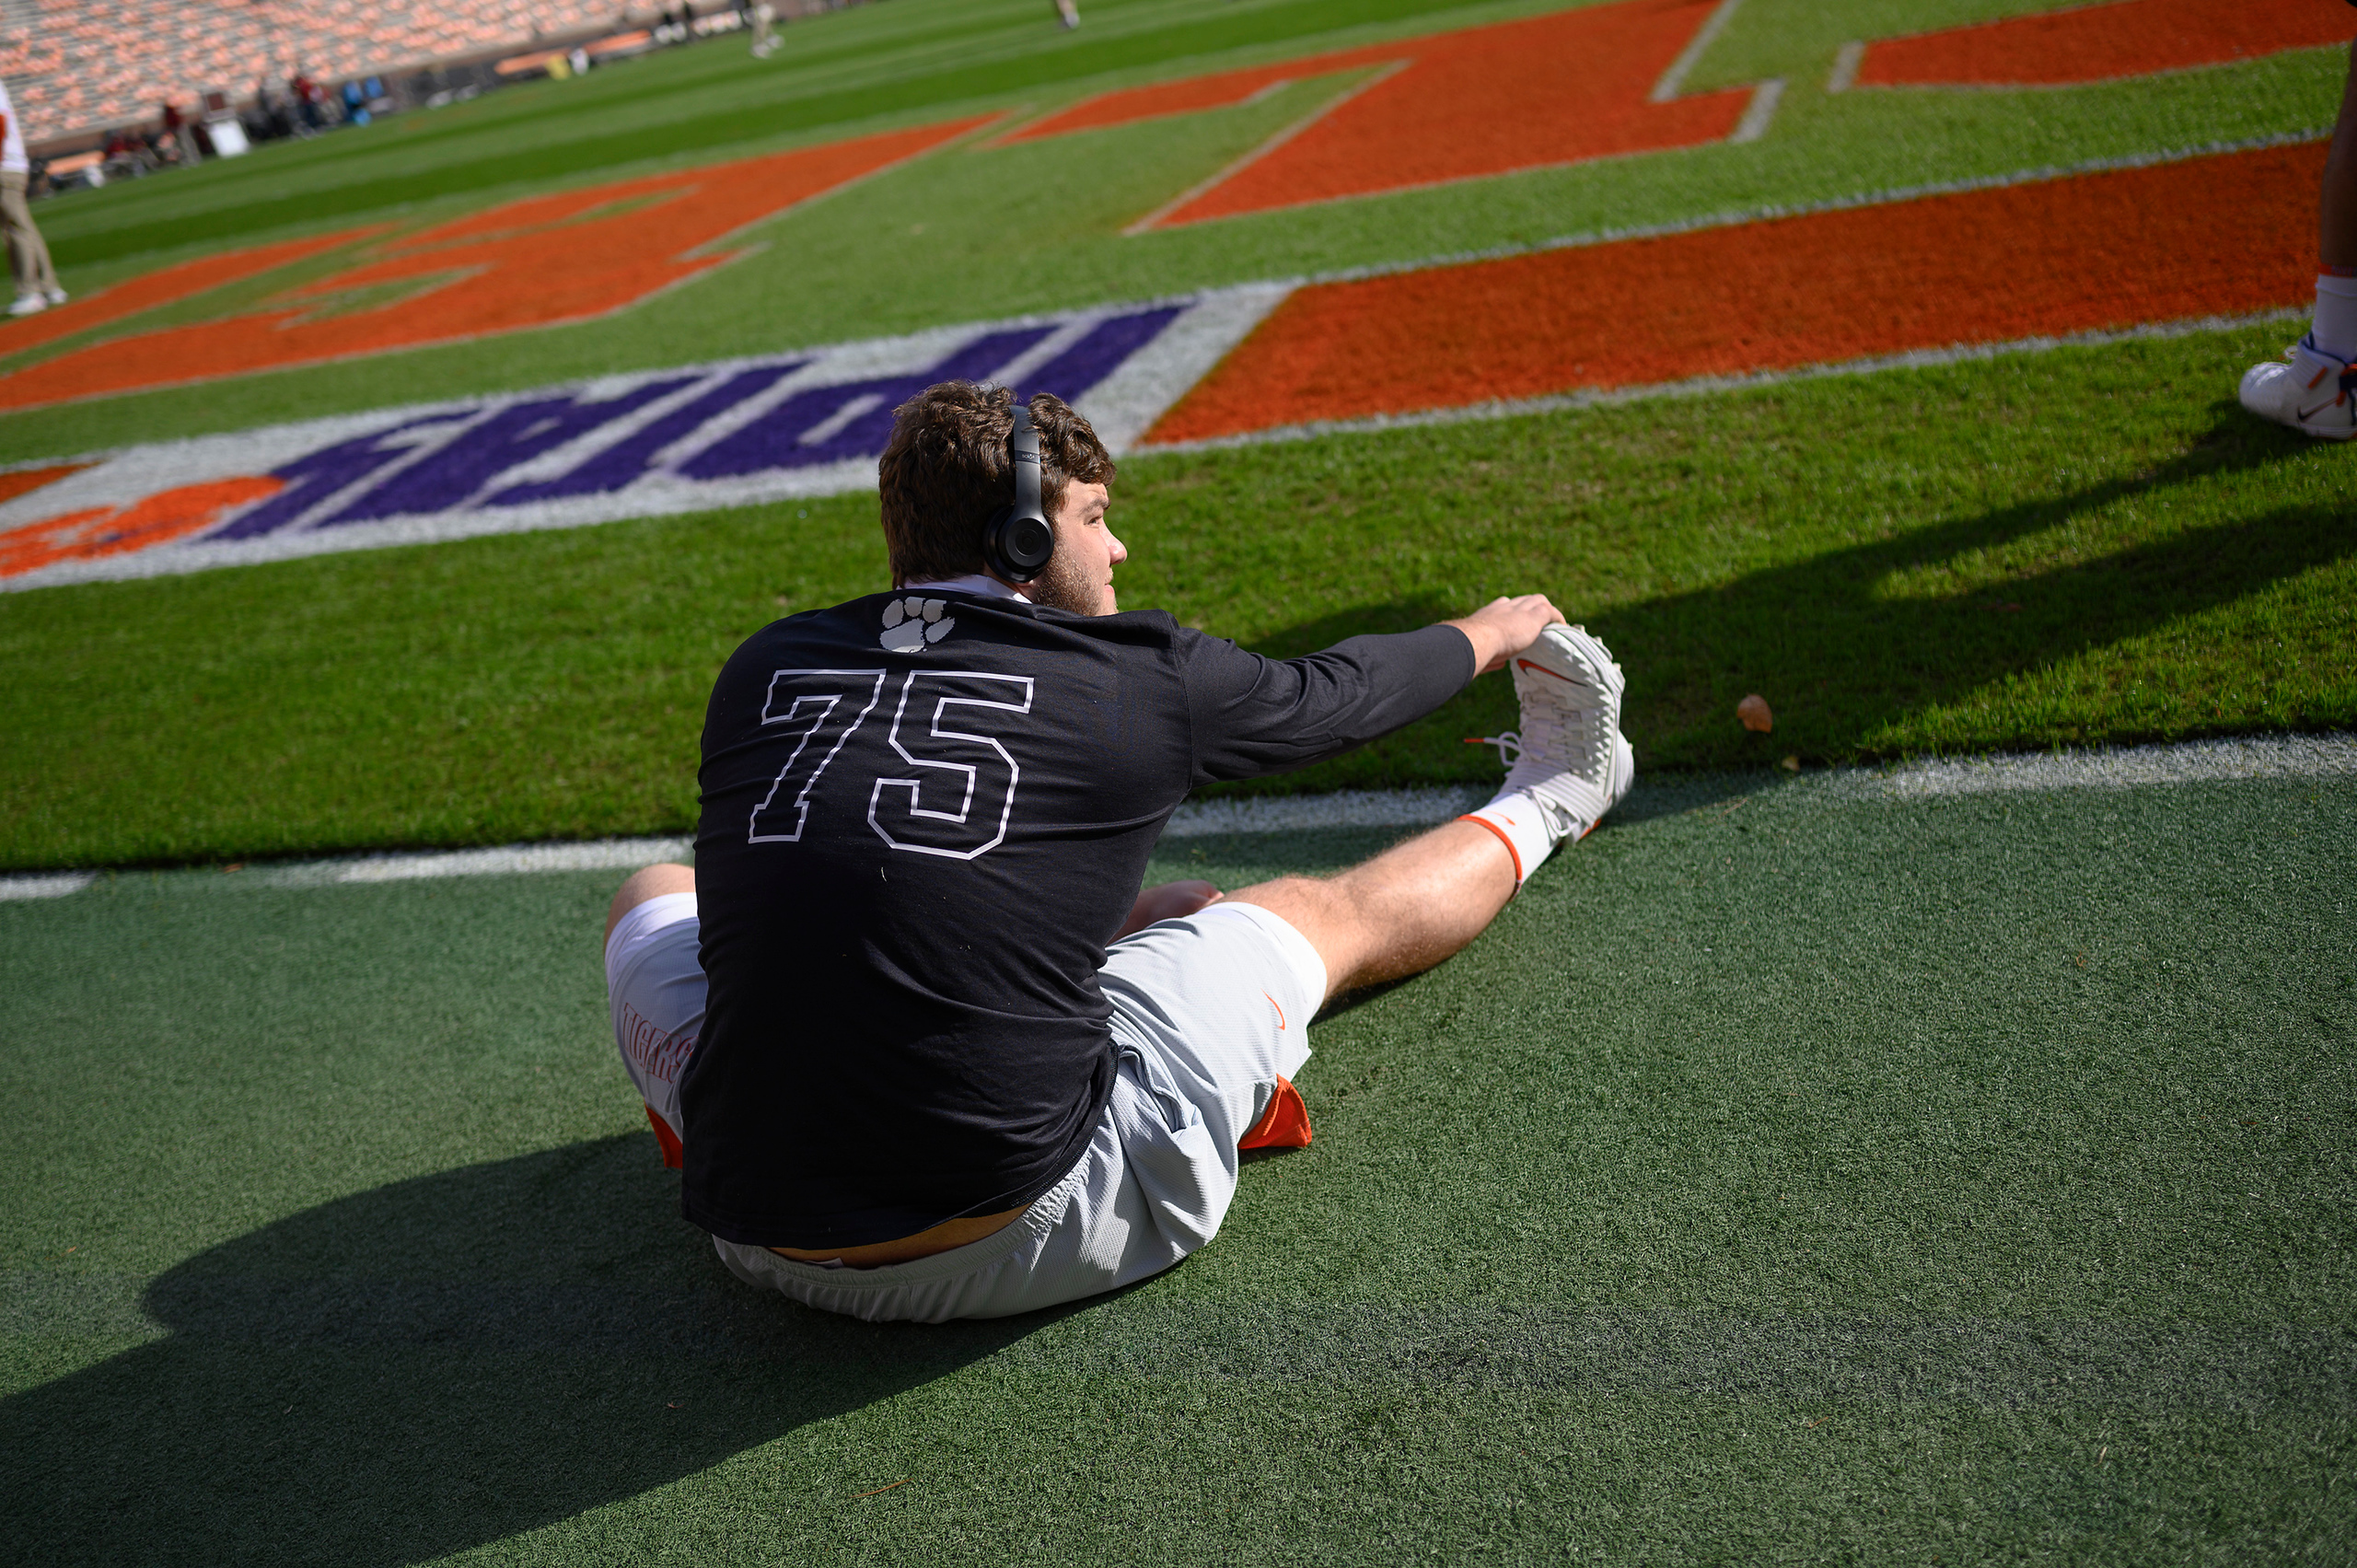 Clemson offensive lineman Trent Howard(75) stretches during pregame before the game against Boston College, October 31, 2020; Clemson, South Carolina, USA;  at Memorial Stadium. Mandatory Credit: Josh Morgan -USA TODAY Sports